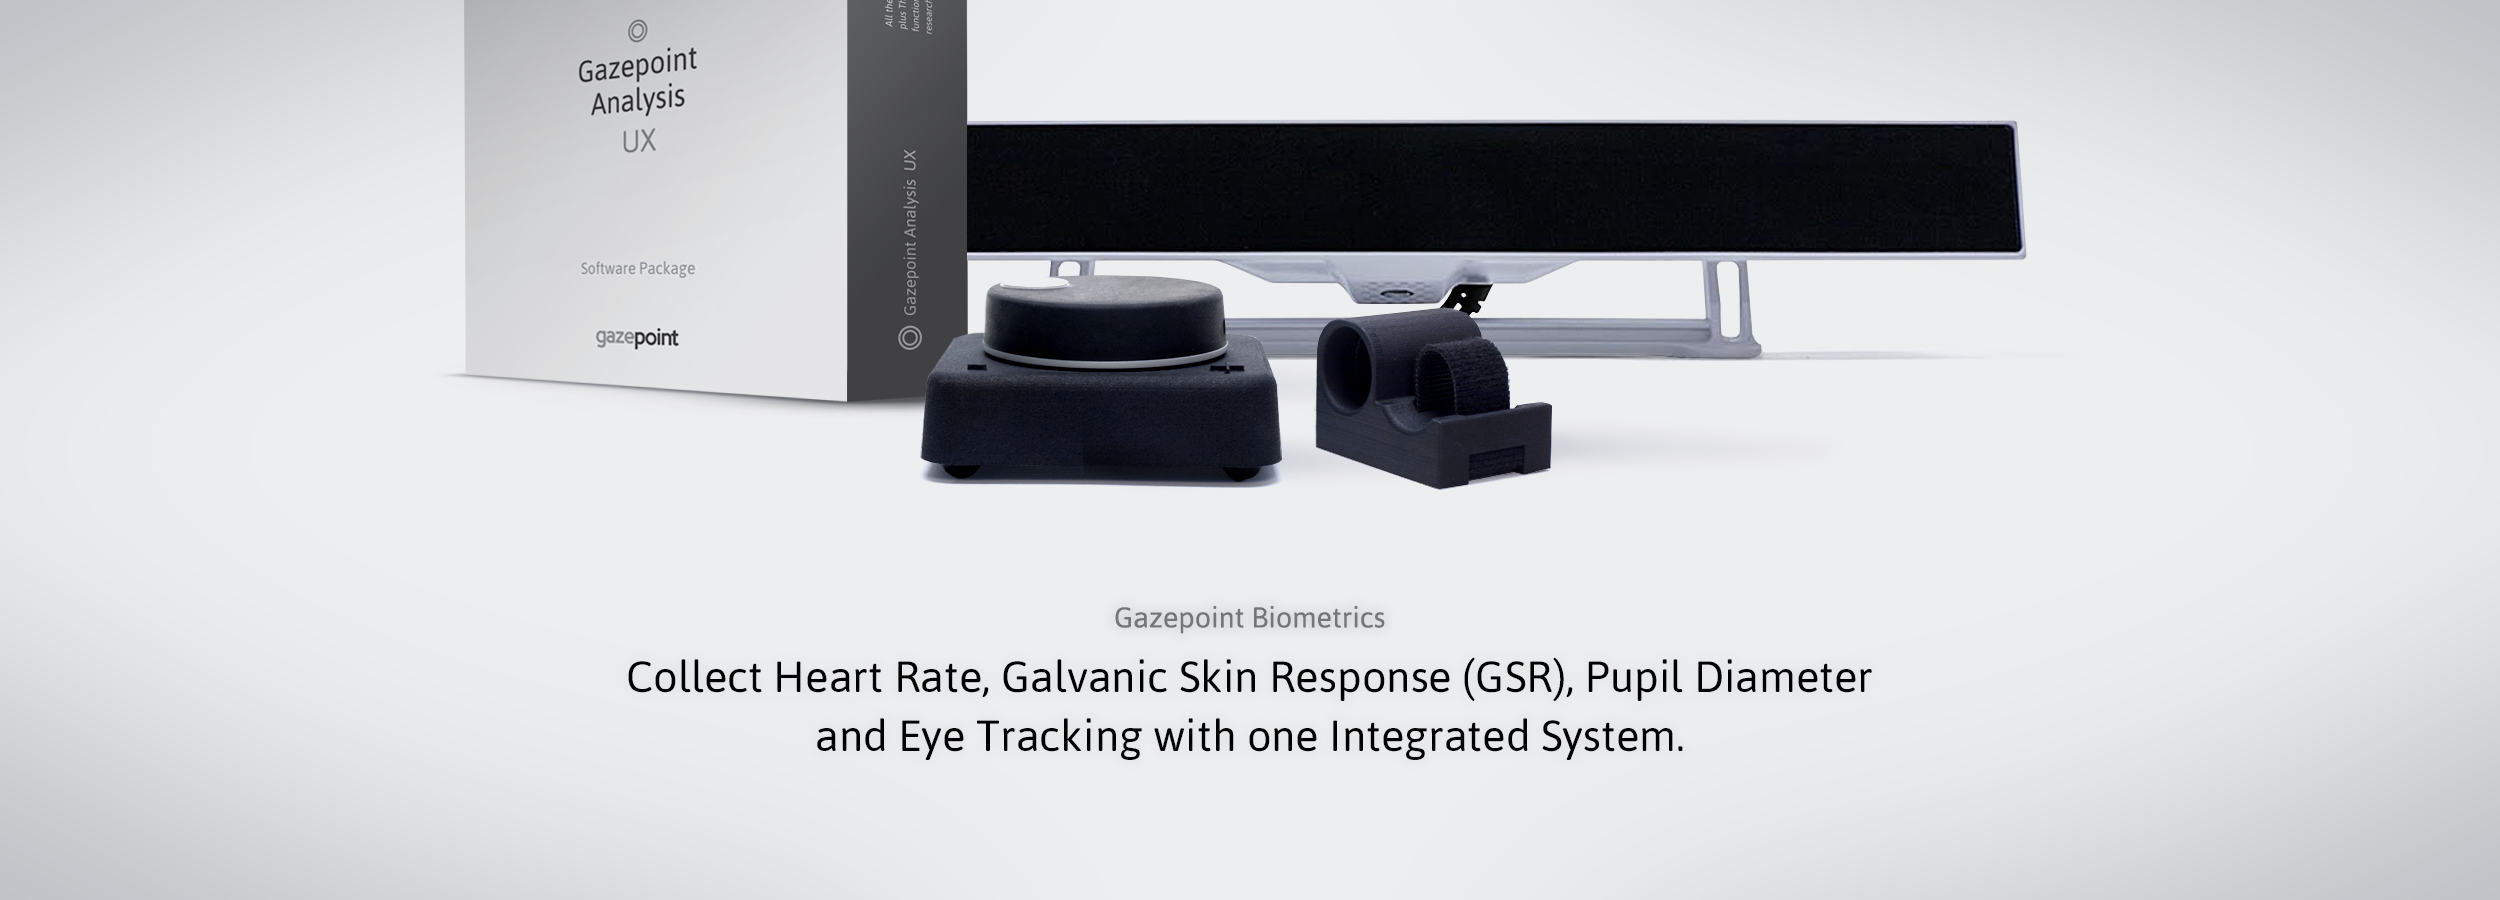 Gazepoint Biometrics Kit